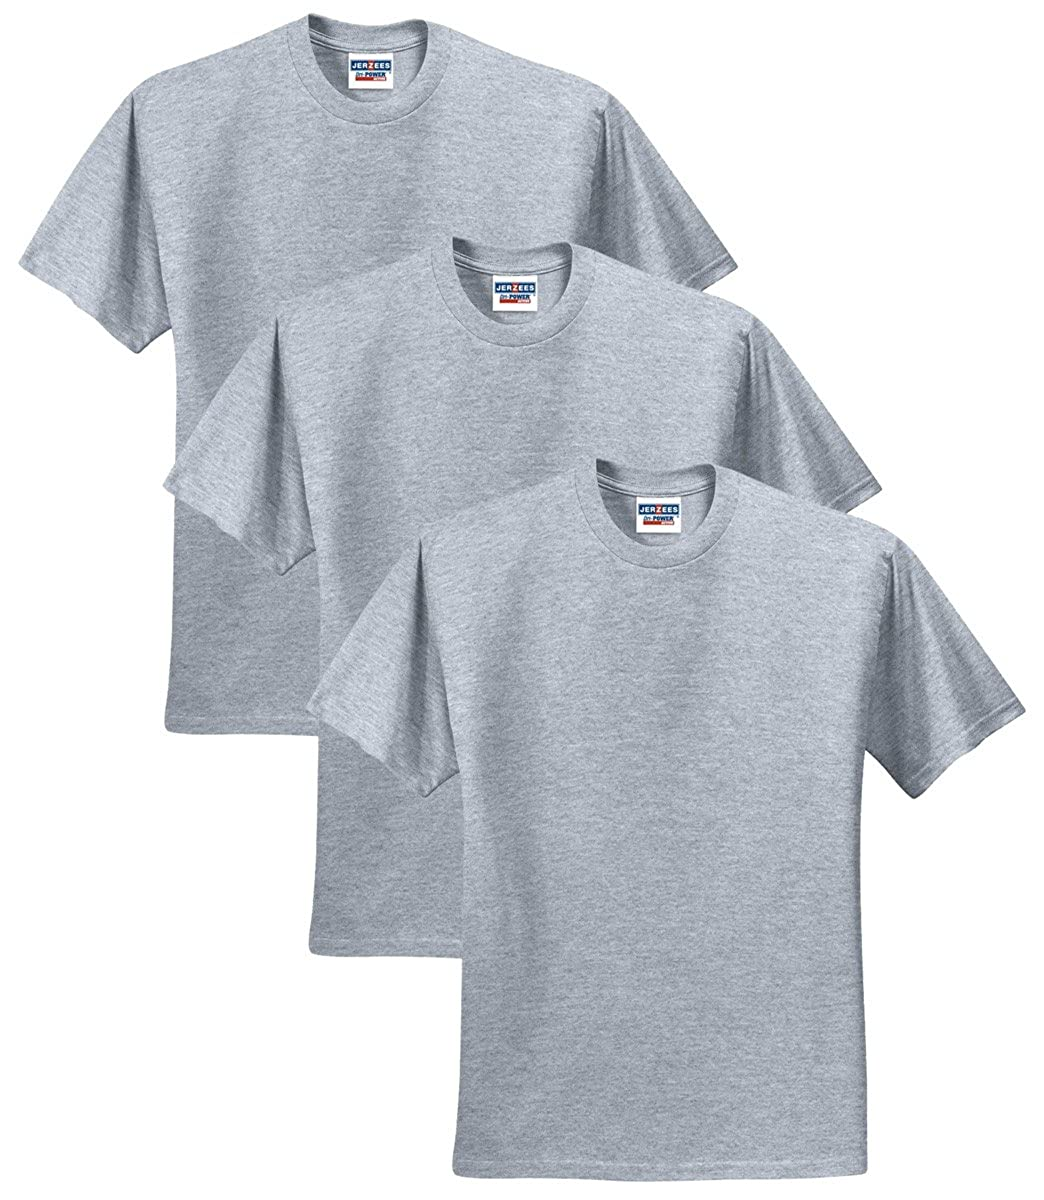 Jerzees Mens Adult Short Sleeve T Shirt 3 Pack Amazon